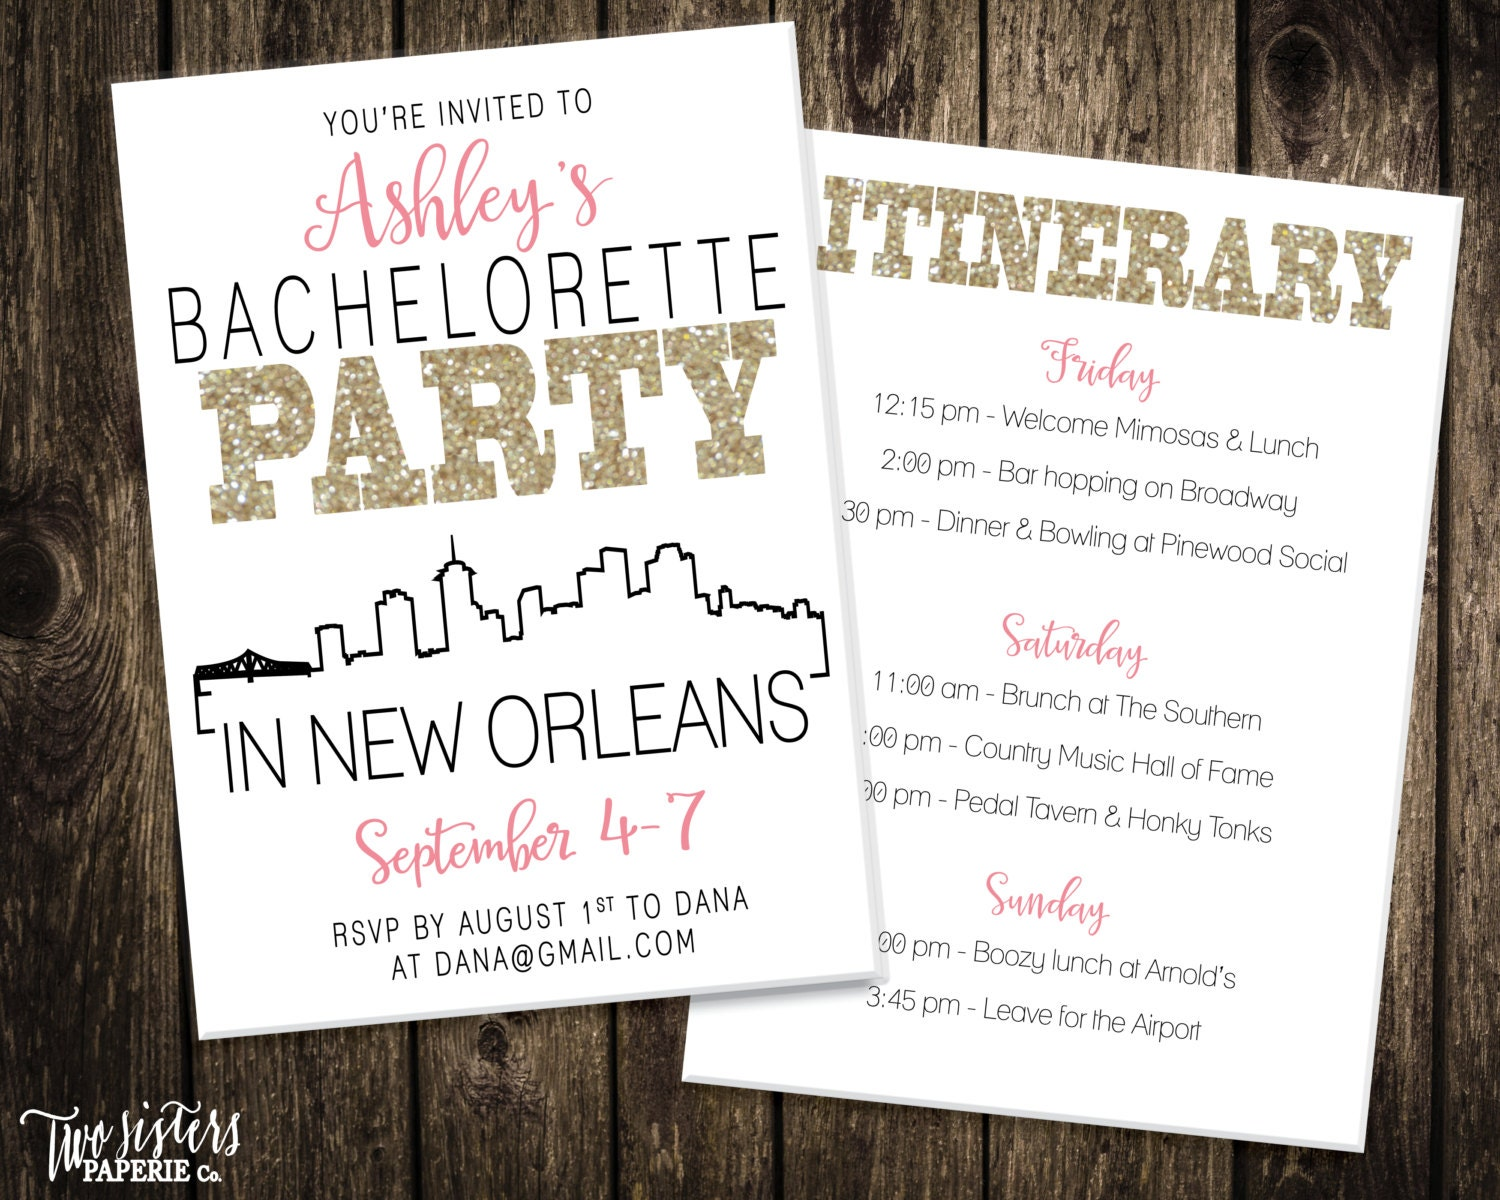 New Orleans Bachelorette Party Invitation and Itinerary NEW